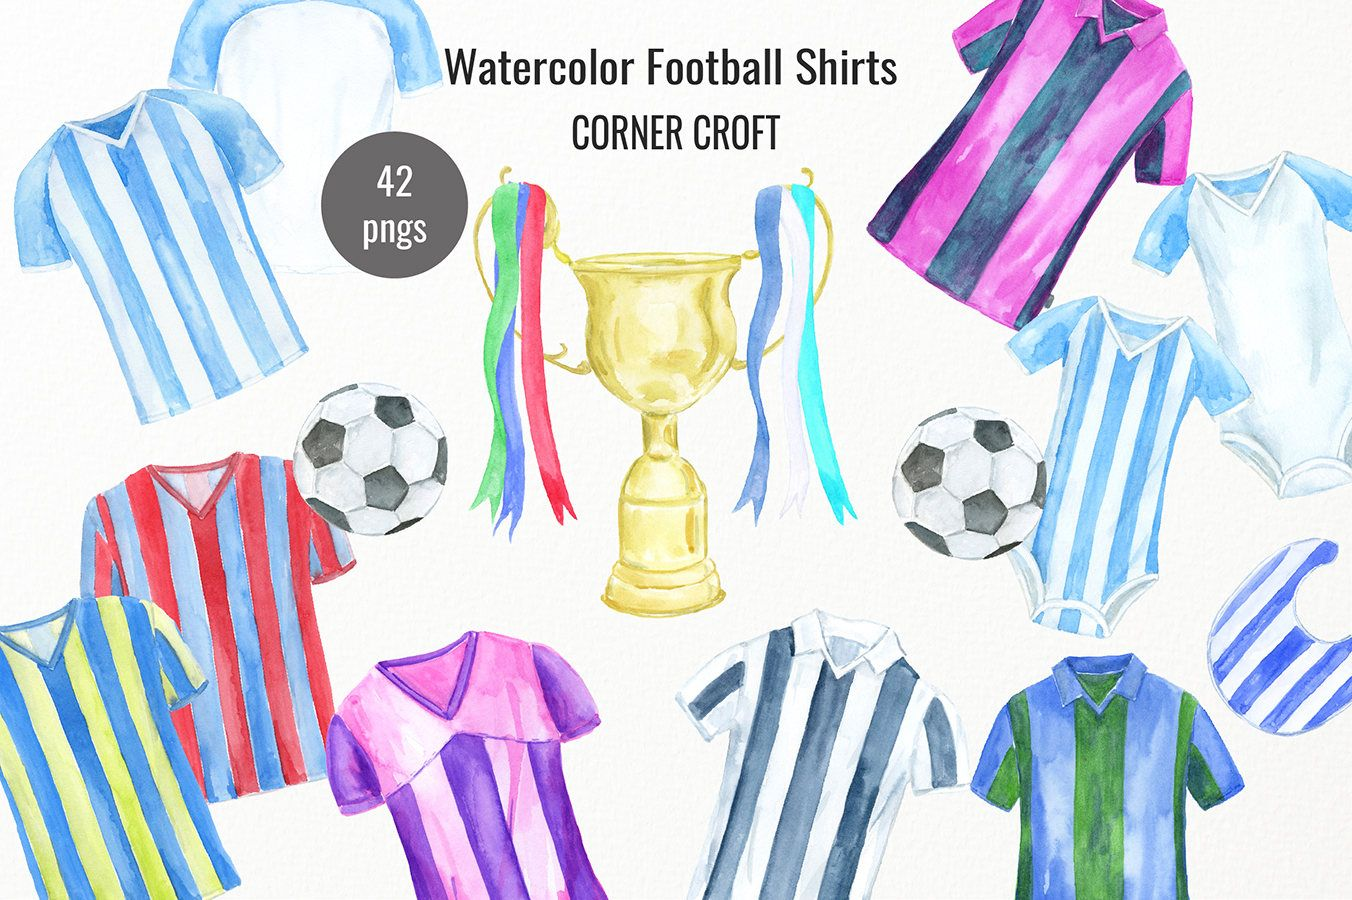 Watercolor shirt clipart image freeuse download Watercolour football shirts, watercolor football clipart ... image freeuse download